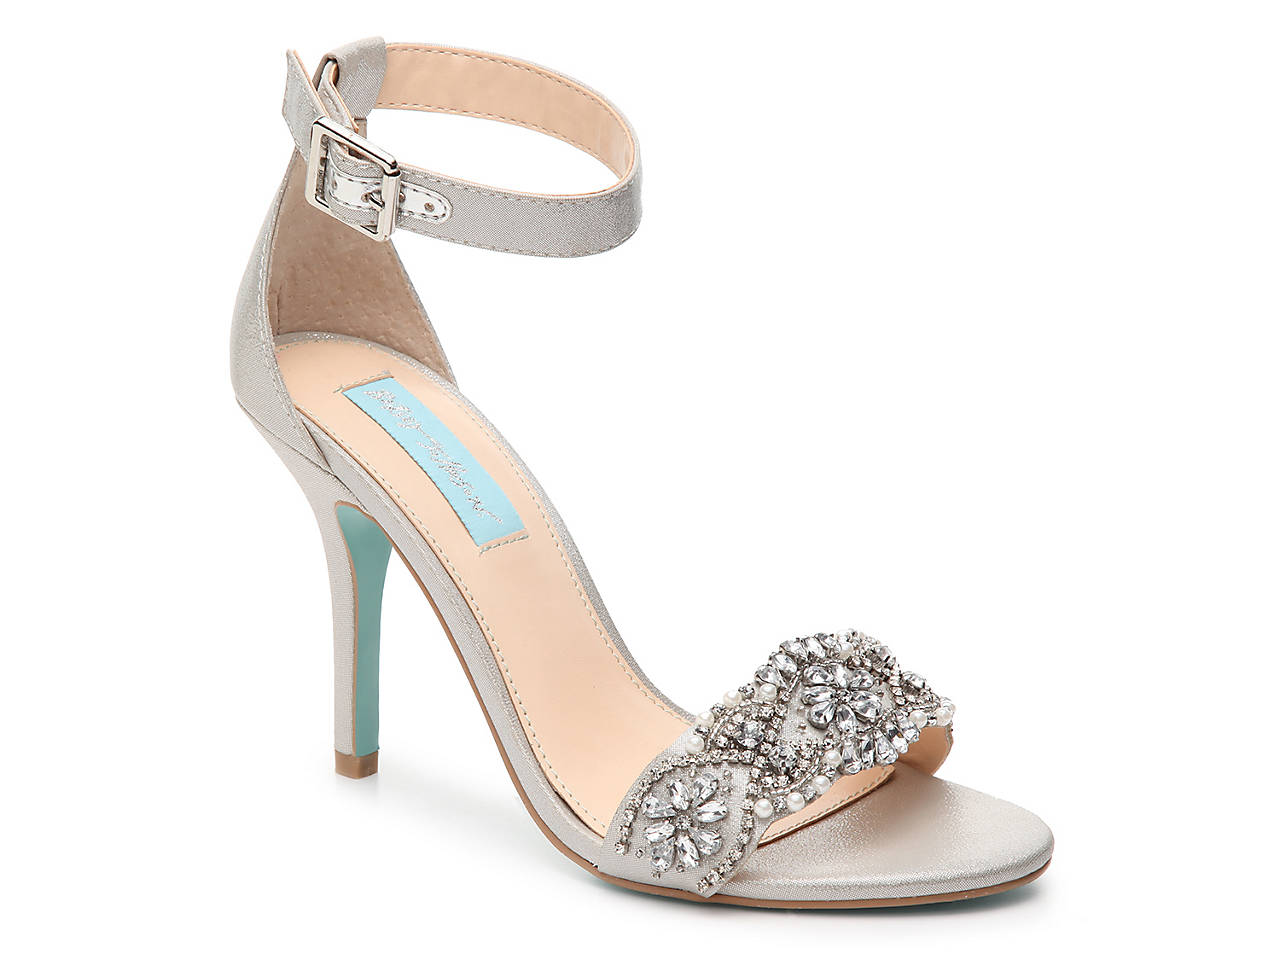 f2faa92475f Betsey Johnson Shoes